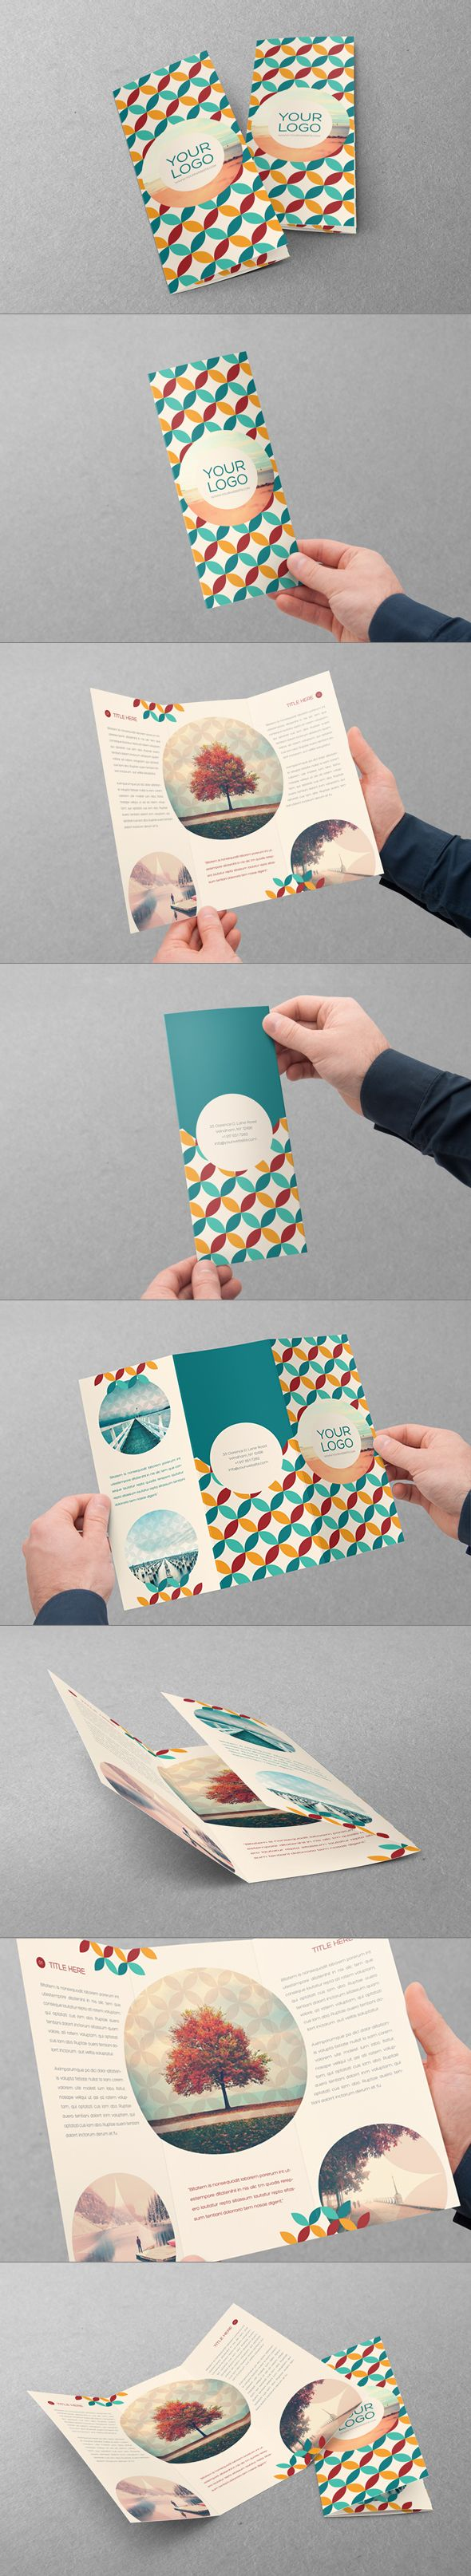 Retro Trifold by Abra Design, via Behance